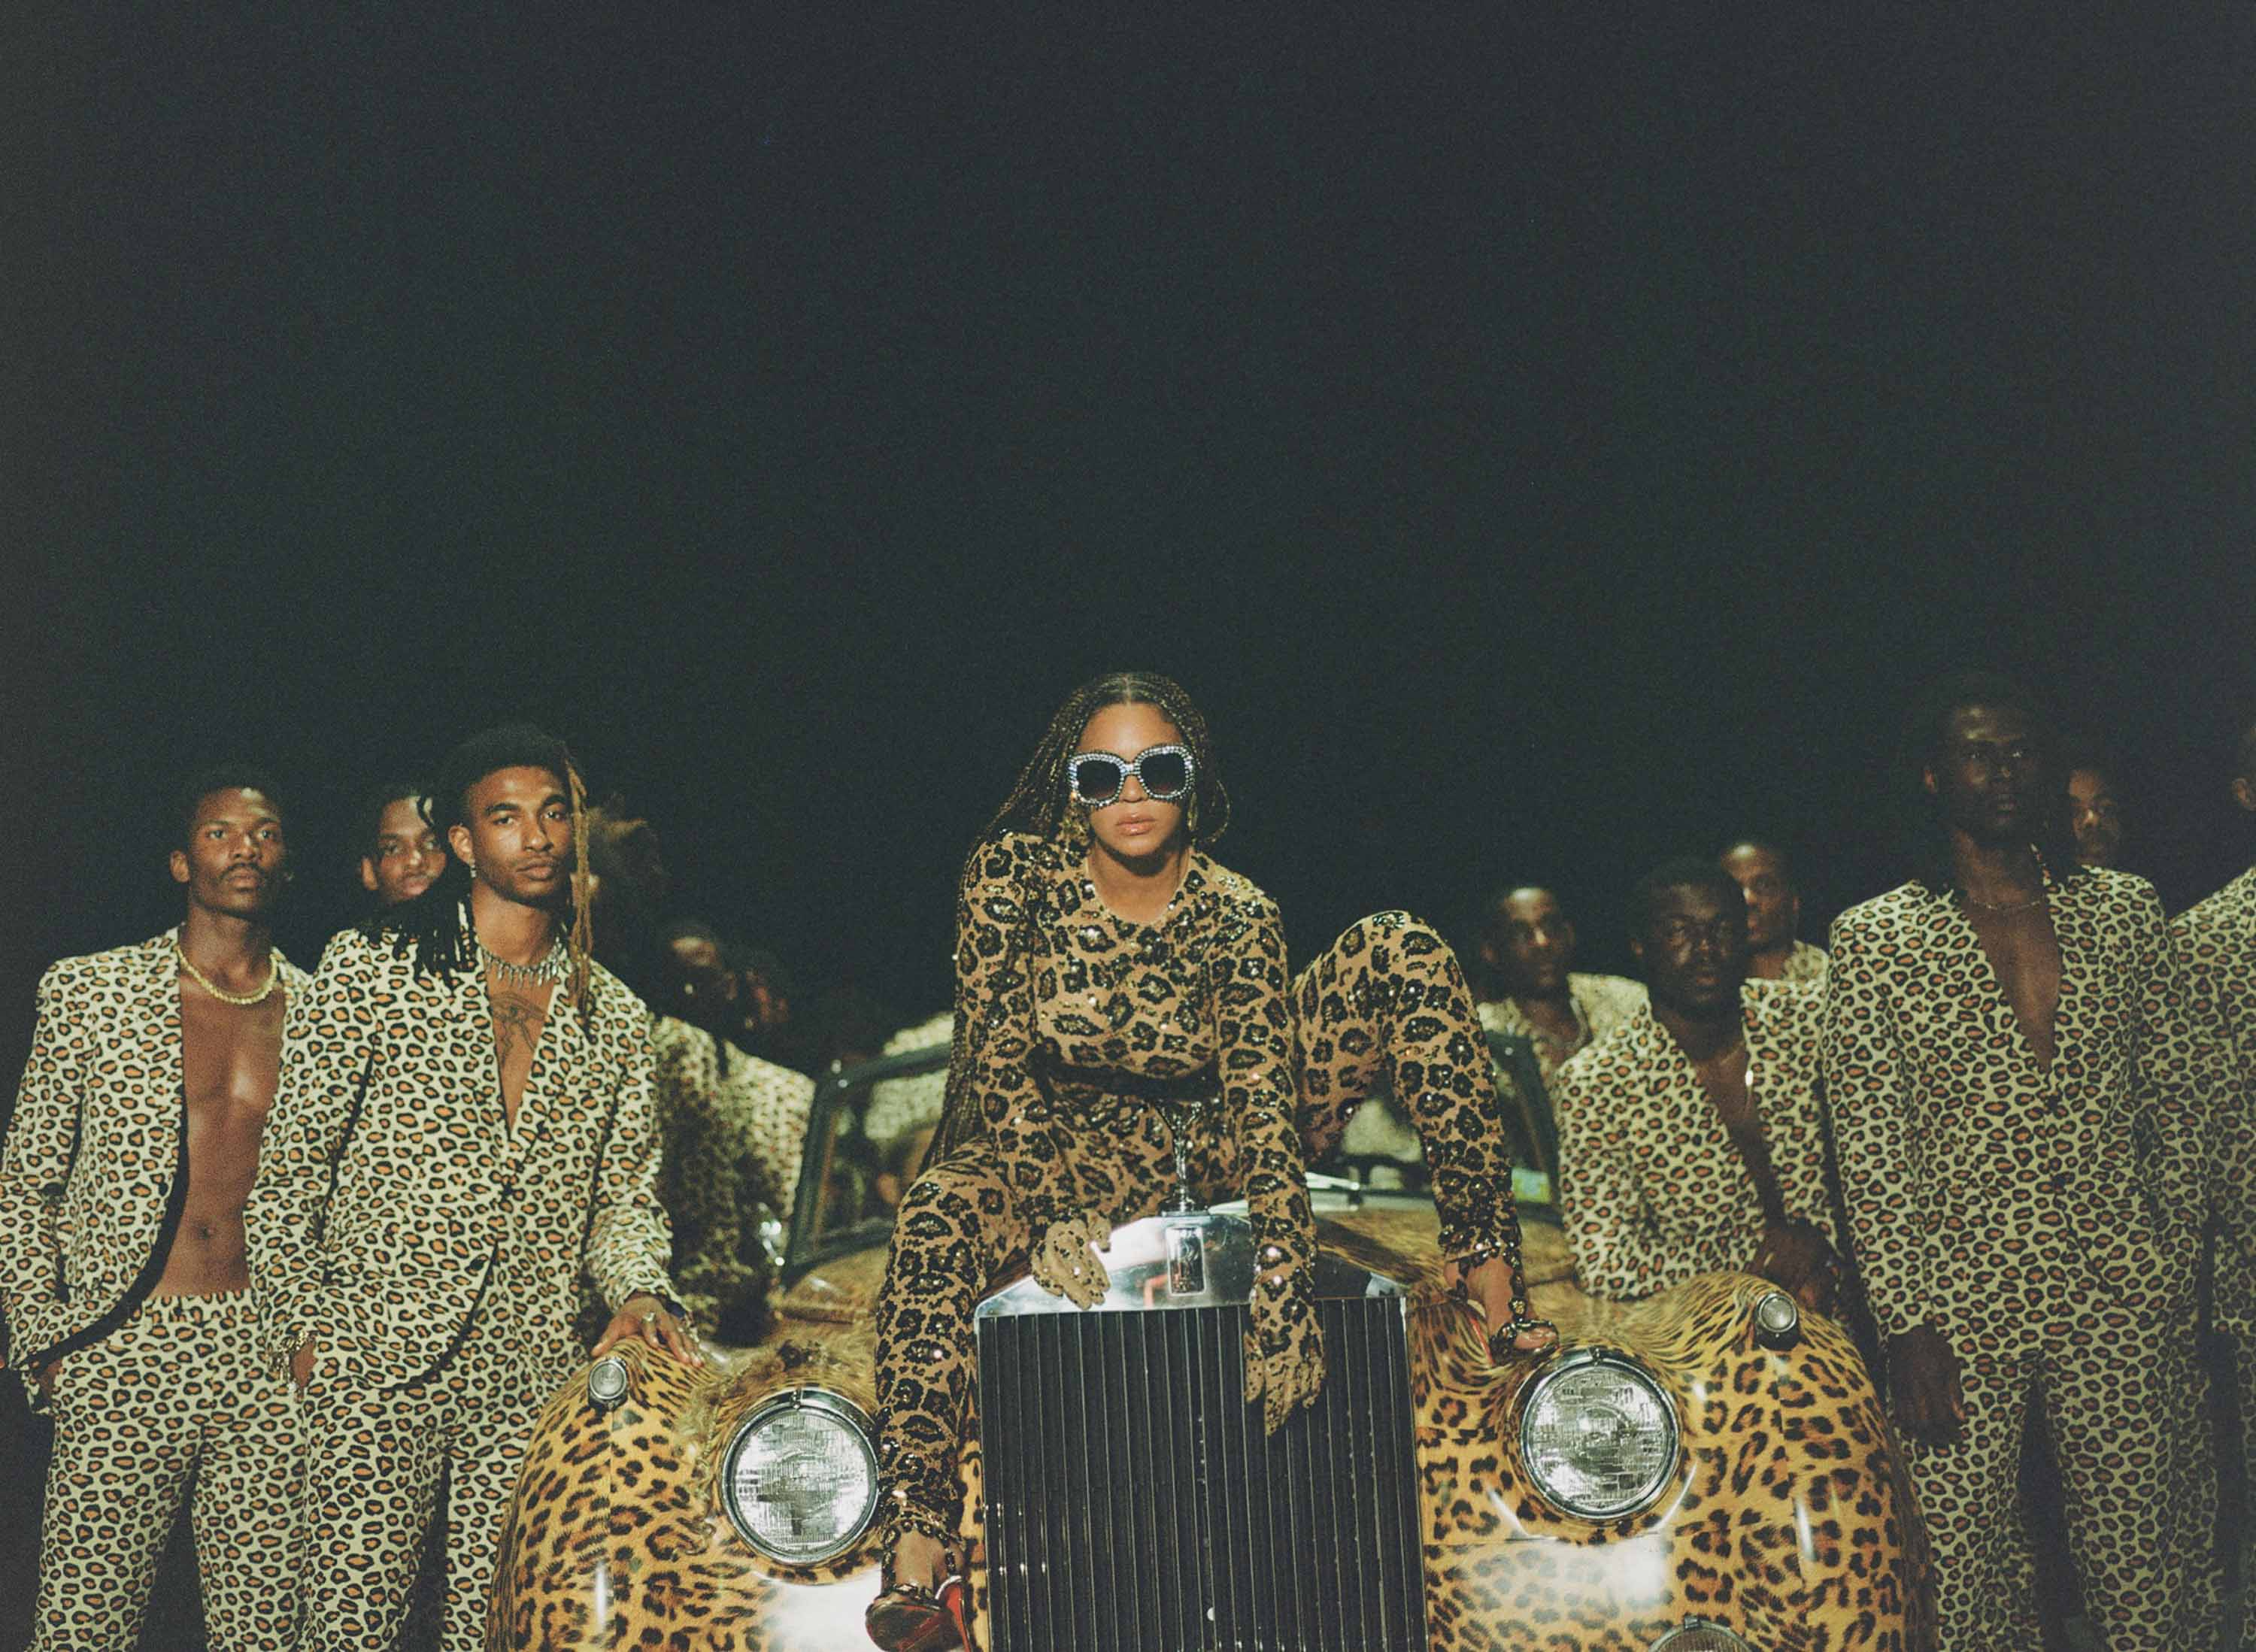 Beyoncé's celebratory visual album 'Black Is King' drops on Disney+